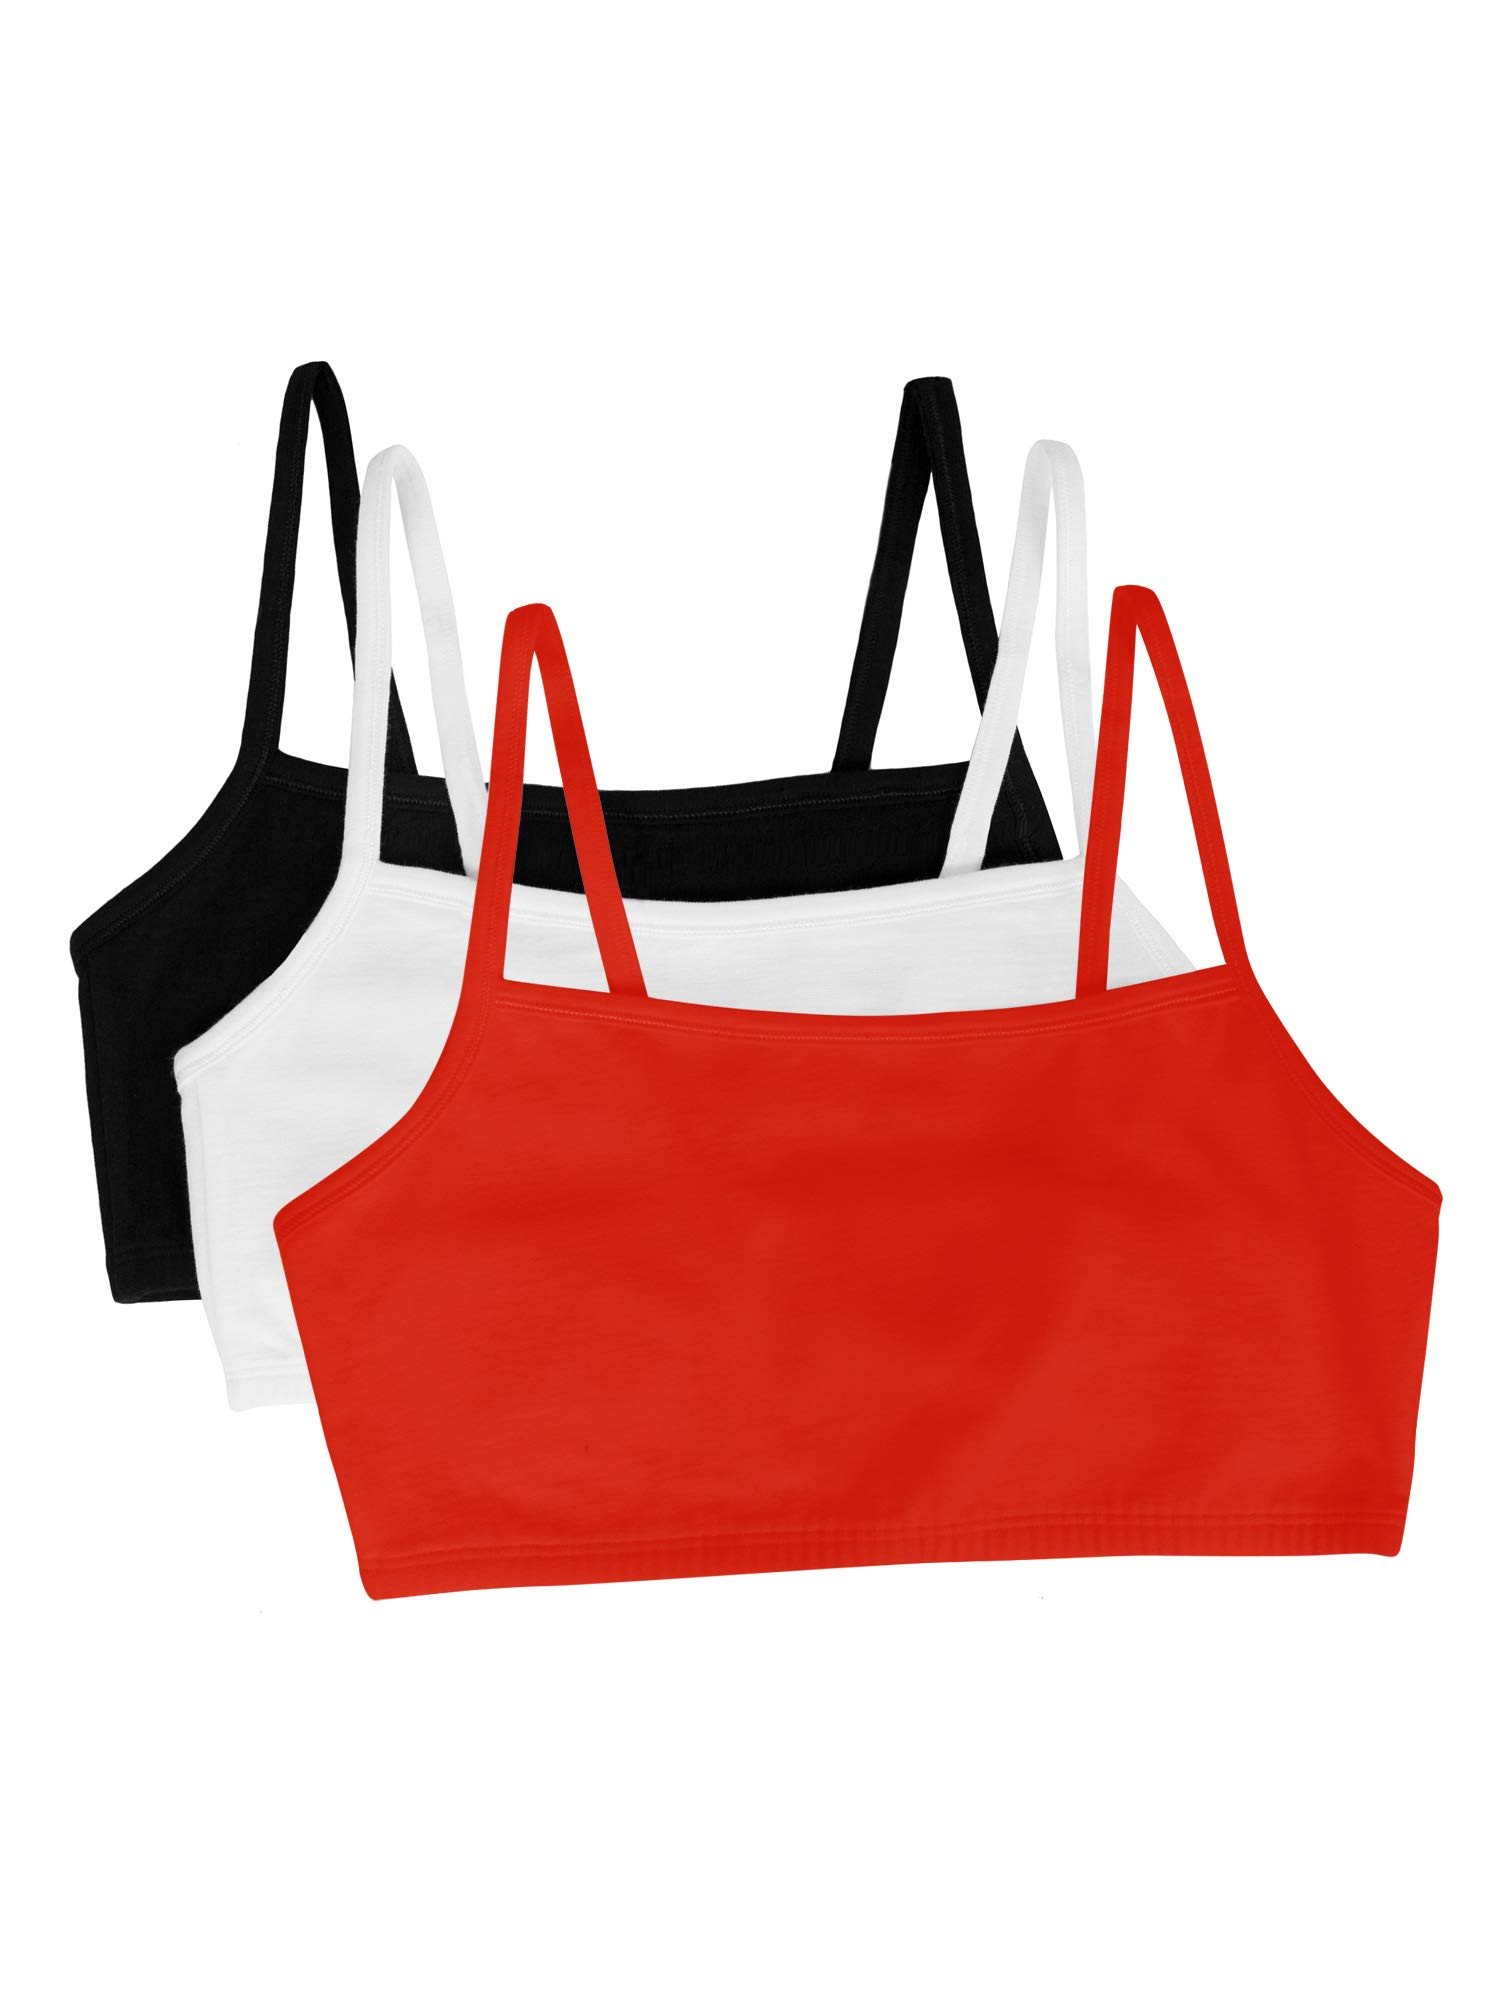 Fruit of the Loom womens Cotton Pullover Sport Bra, black/white/red hot 32